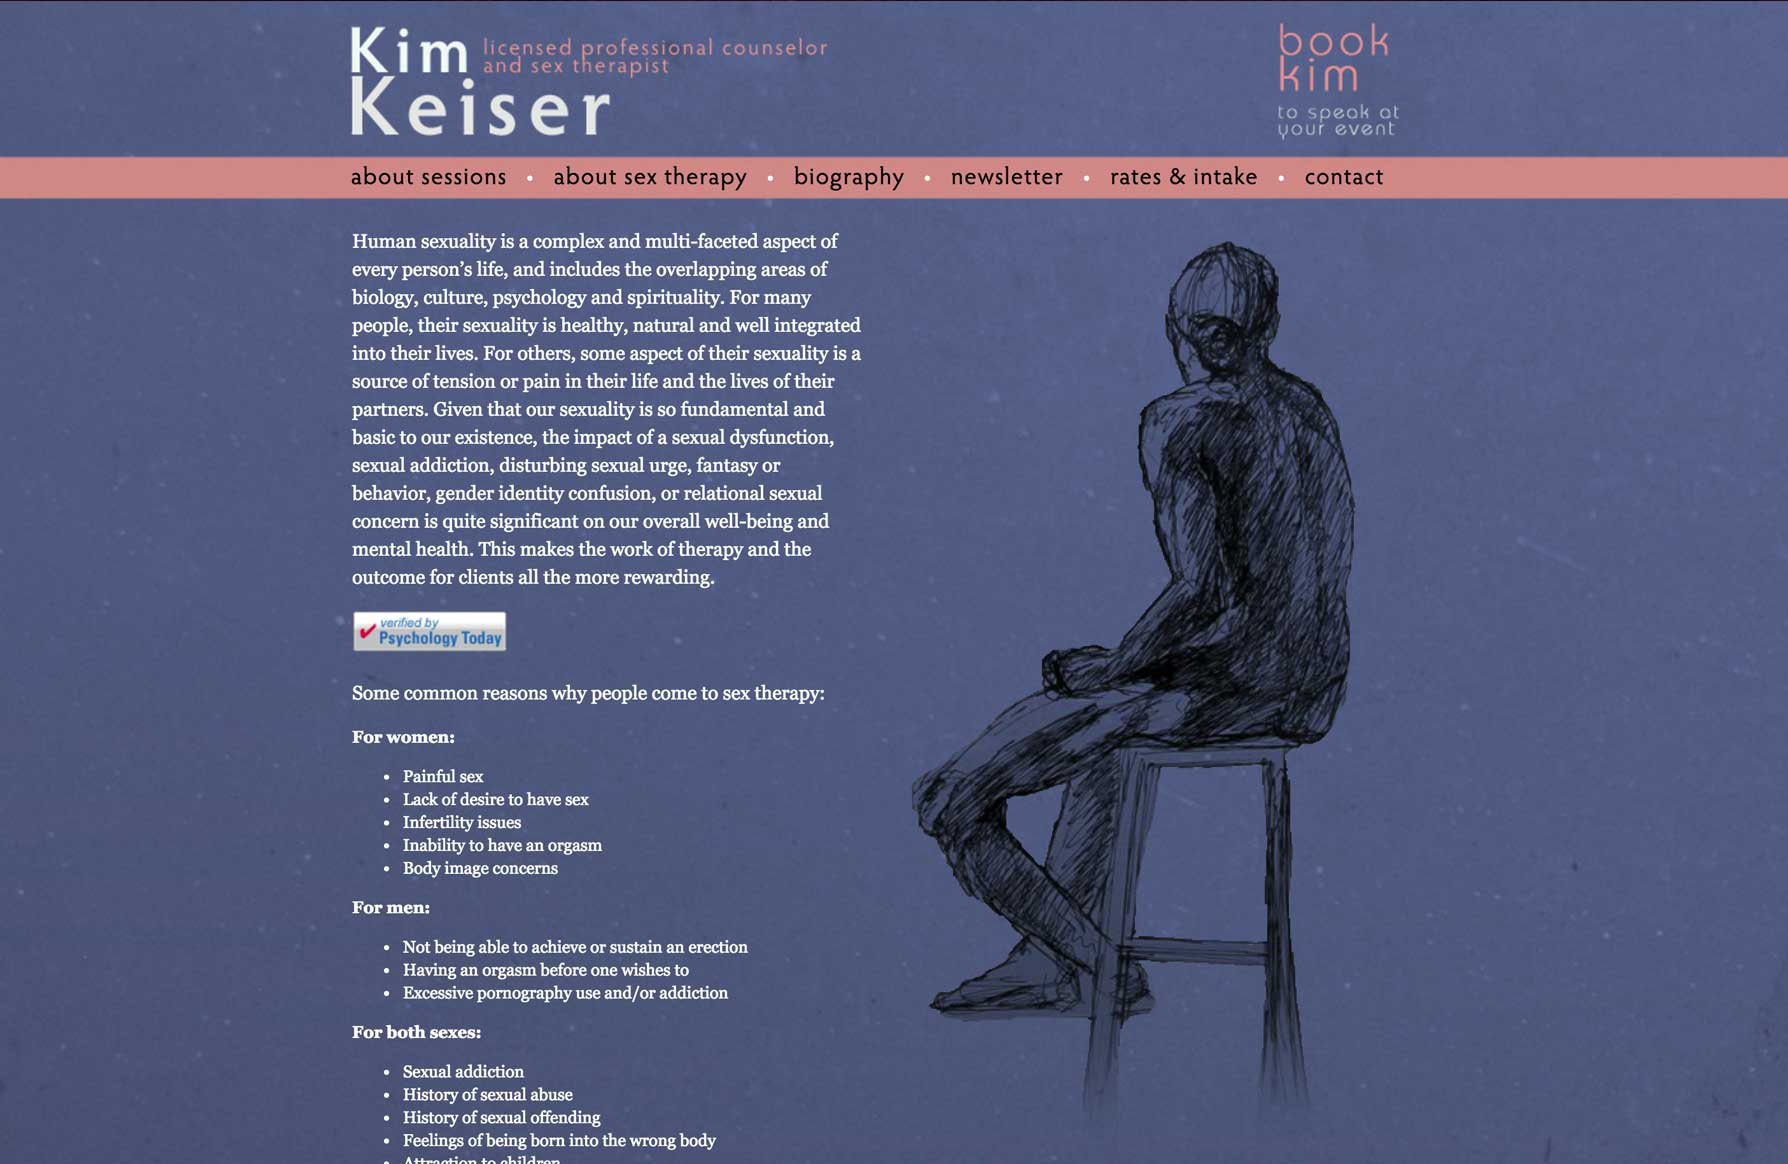 Kim Keiser - Sex Therapist